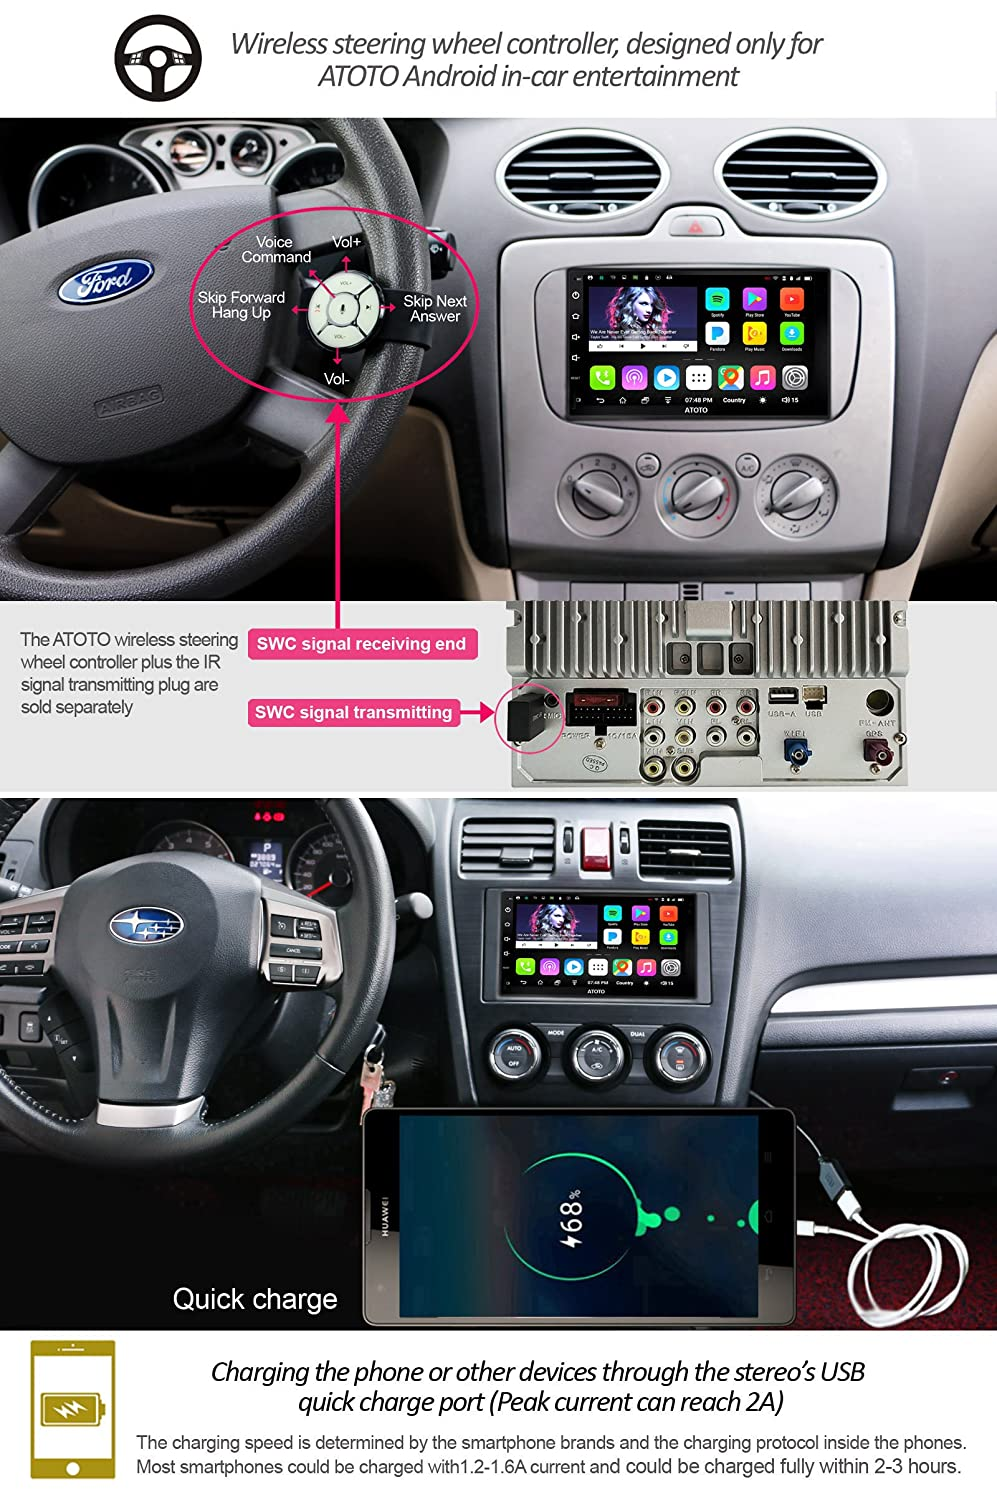 Atoto A6 Android Car Navigation Stereo 2x Bluetooth Nissan Sentra Radio Removal On Home Equipment Wiring Diagram Quick Charge Premium A6y2721p 2g 32g Universal Auto Entertainment Multimedia